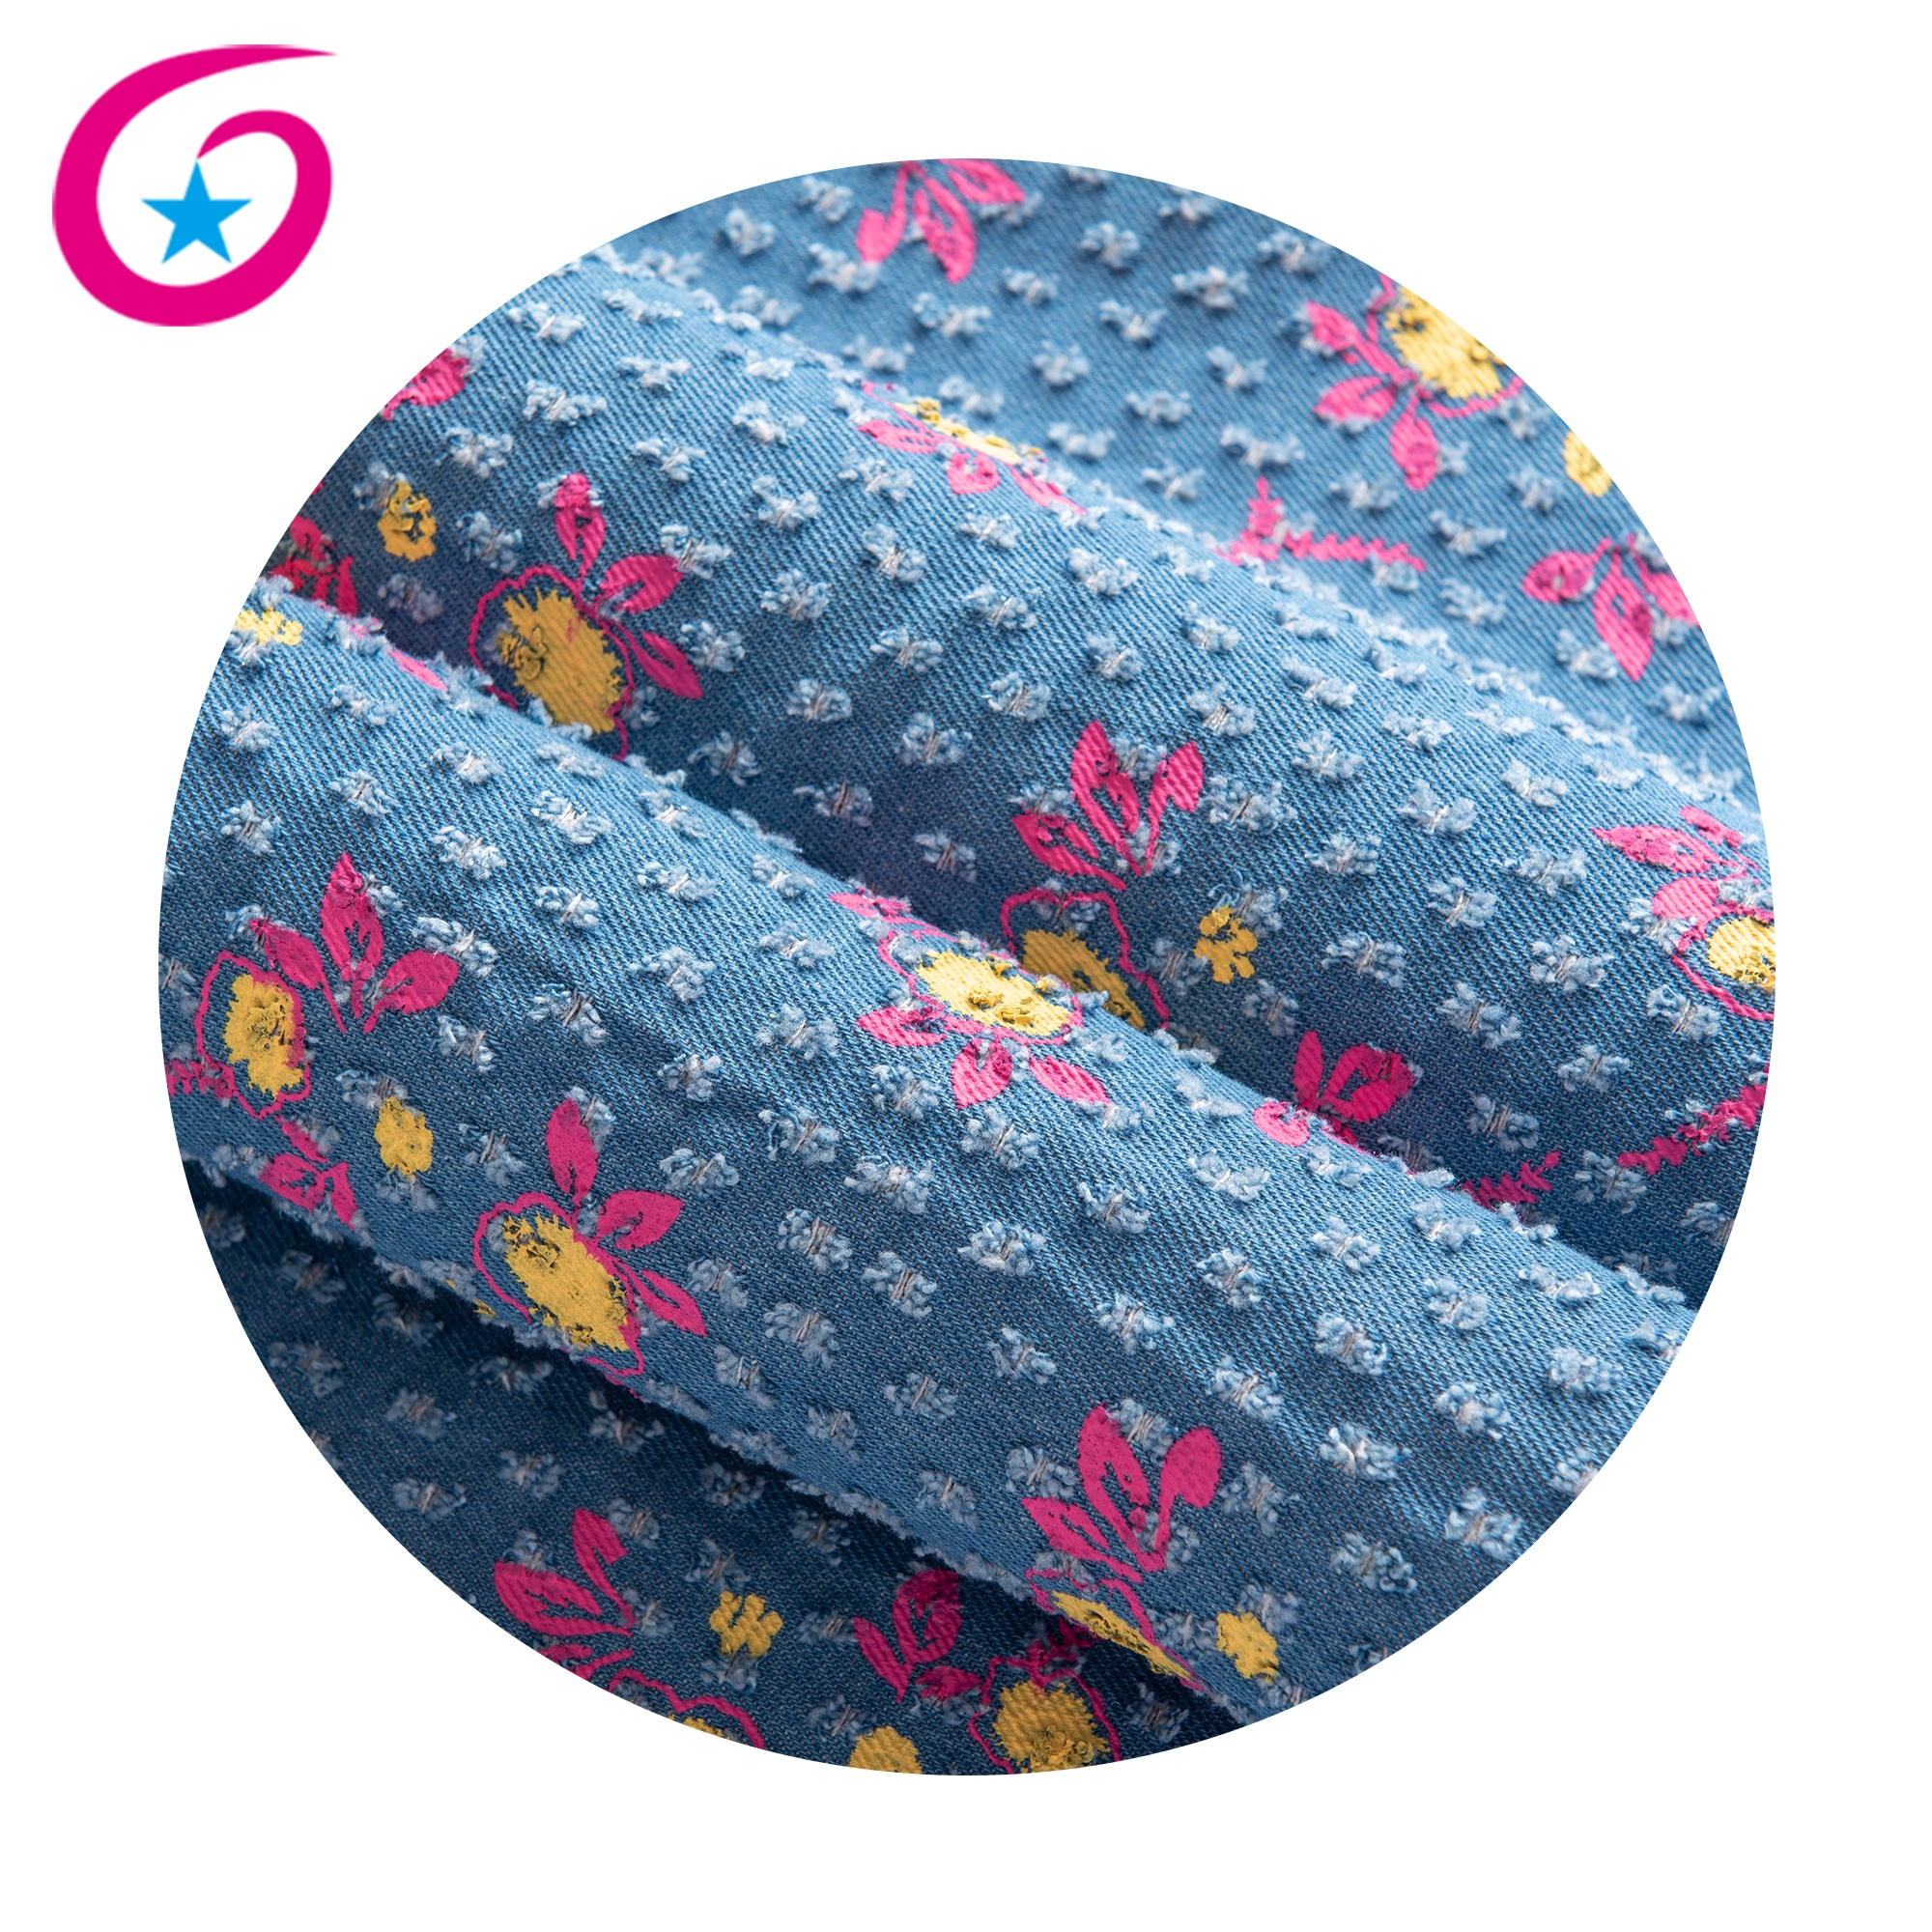 New design of denim fabric 10*10 ploy cotton punching duck